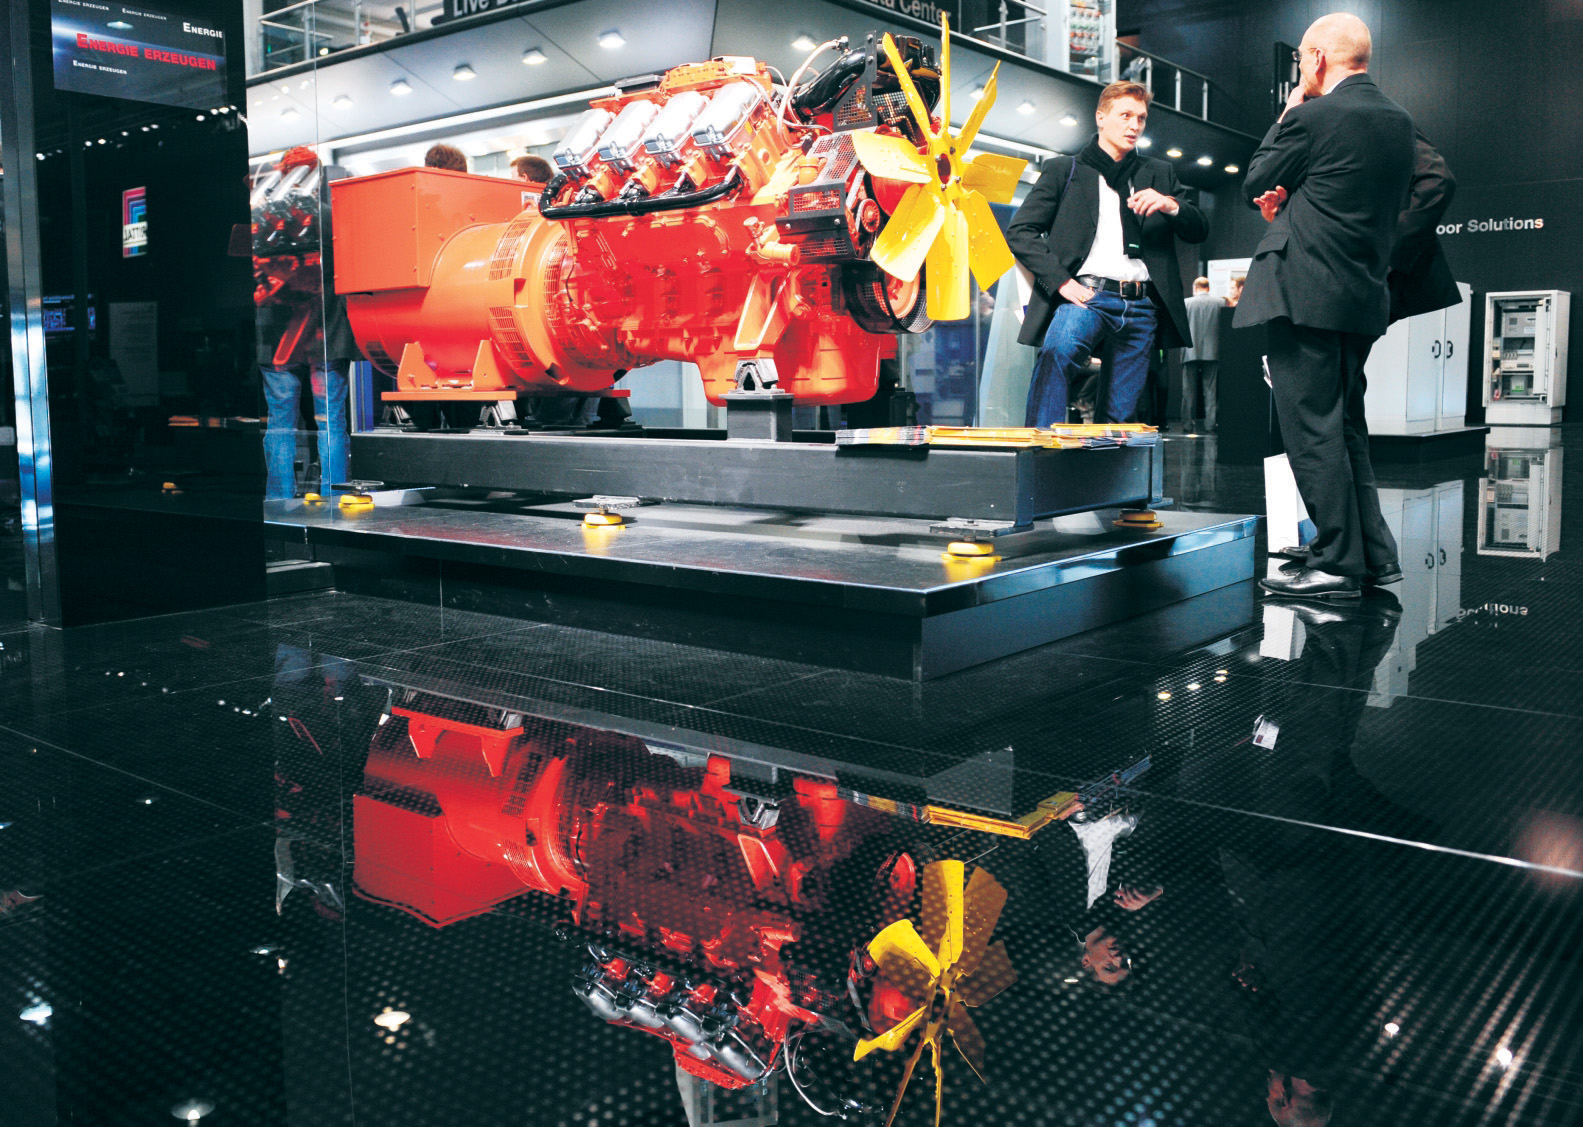 Highlights from Hannover Messe 2011